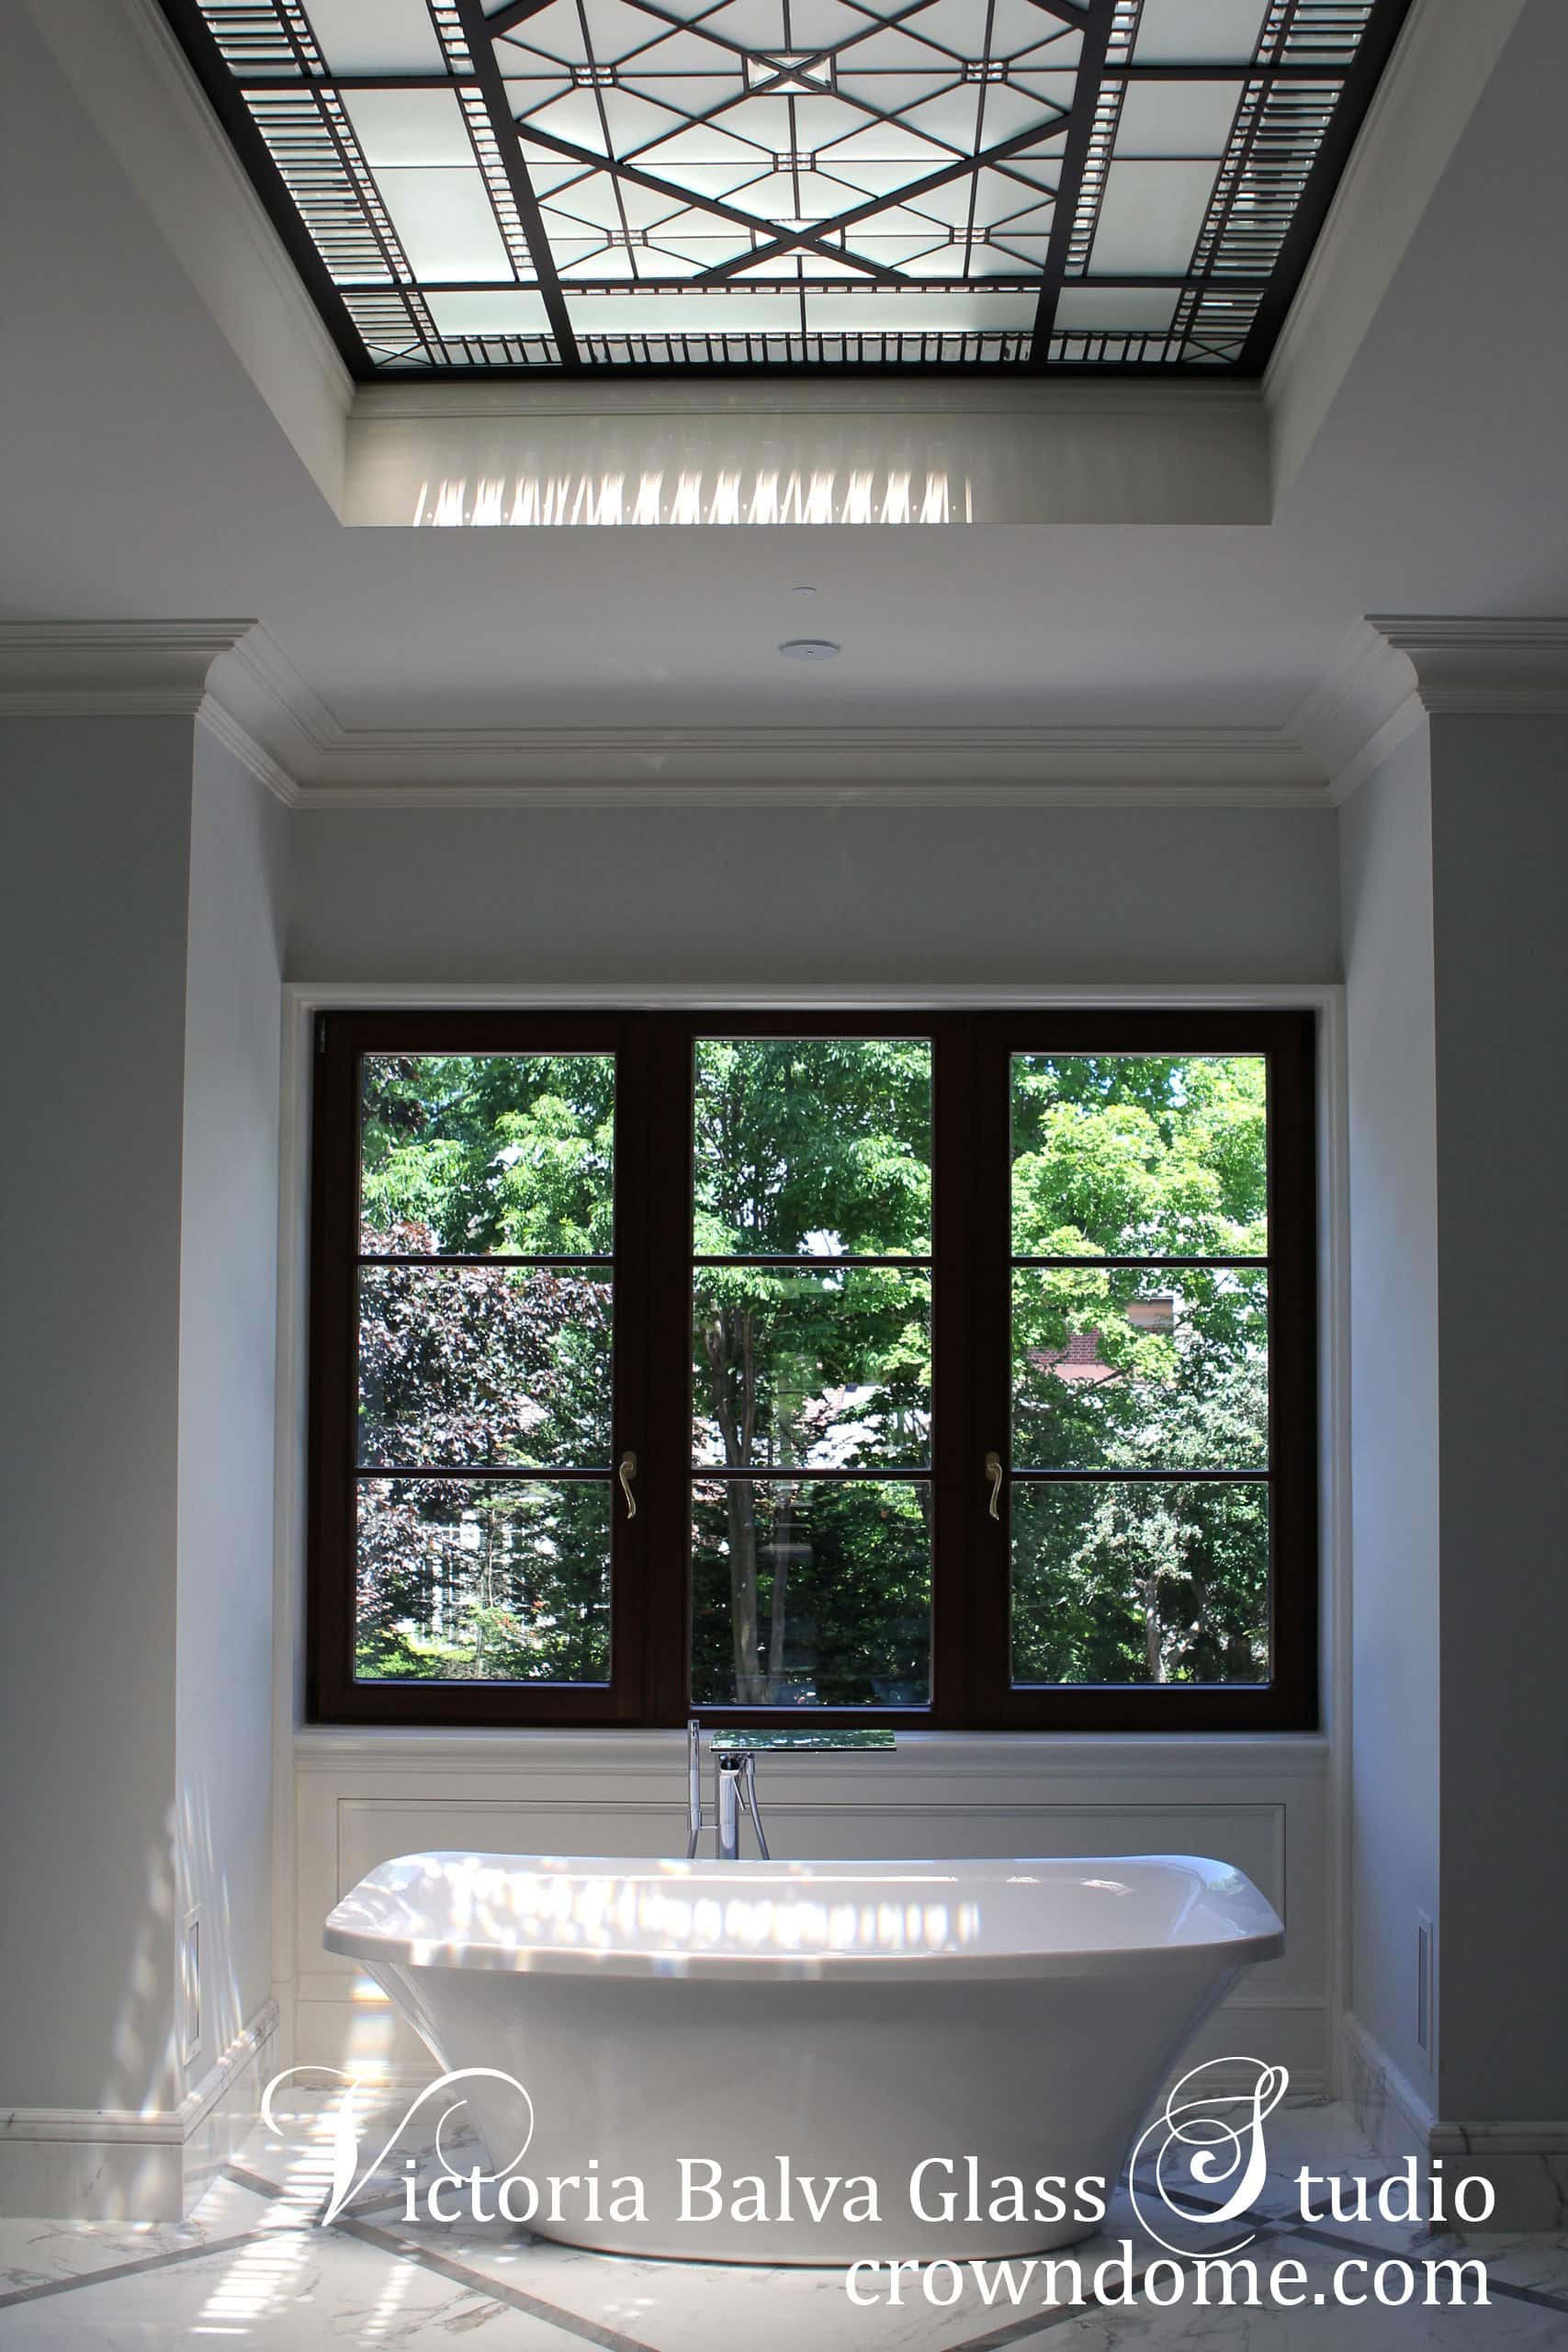 Bathroom interior with leaded glass skylight ceiling Leaded glass skylight design inspired bythe historical leaded glass skylights of Great BritainCastles.Clear textured glass, beveled glass, simple geometrical design. Leaded glass skylight design by stained glass artist Victoria Balva